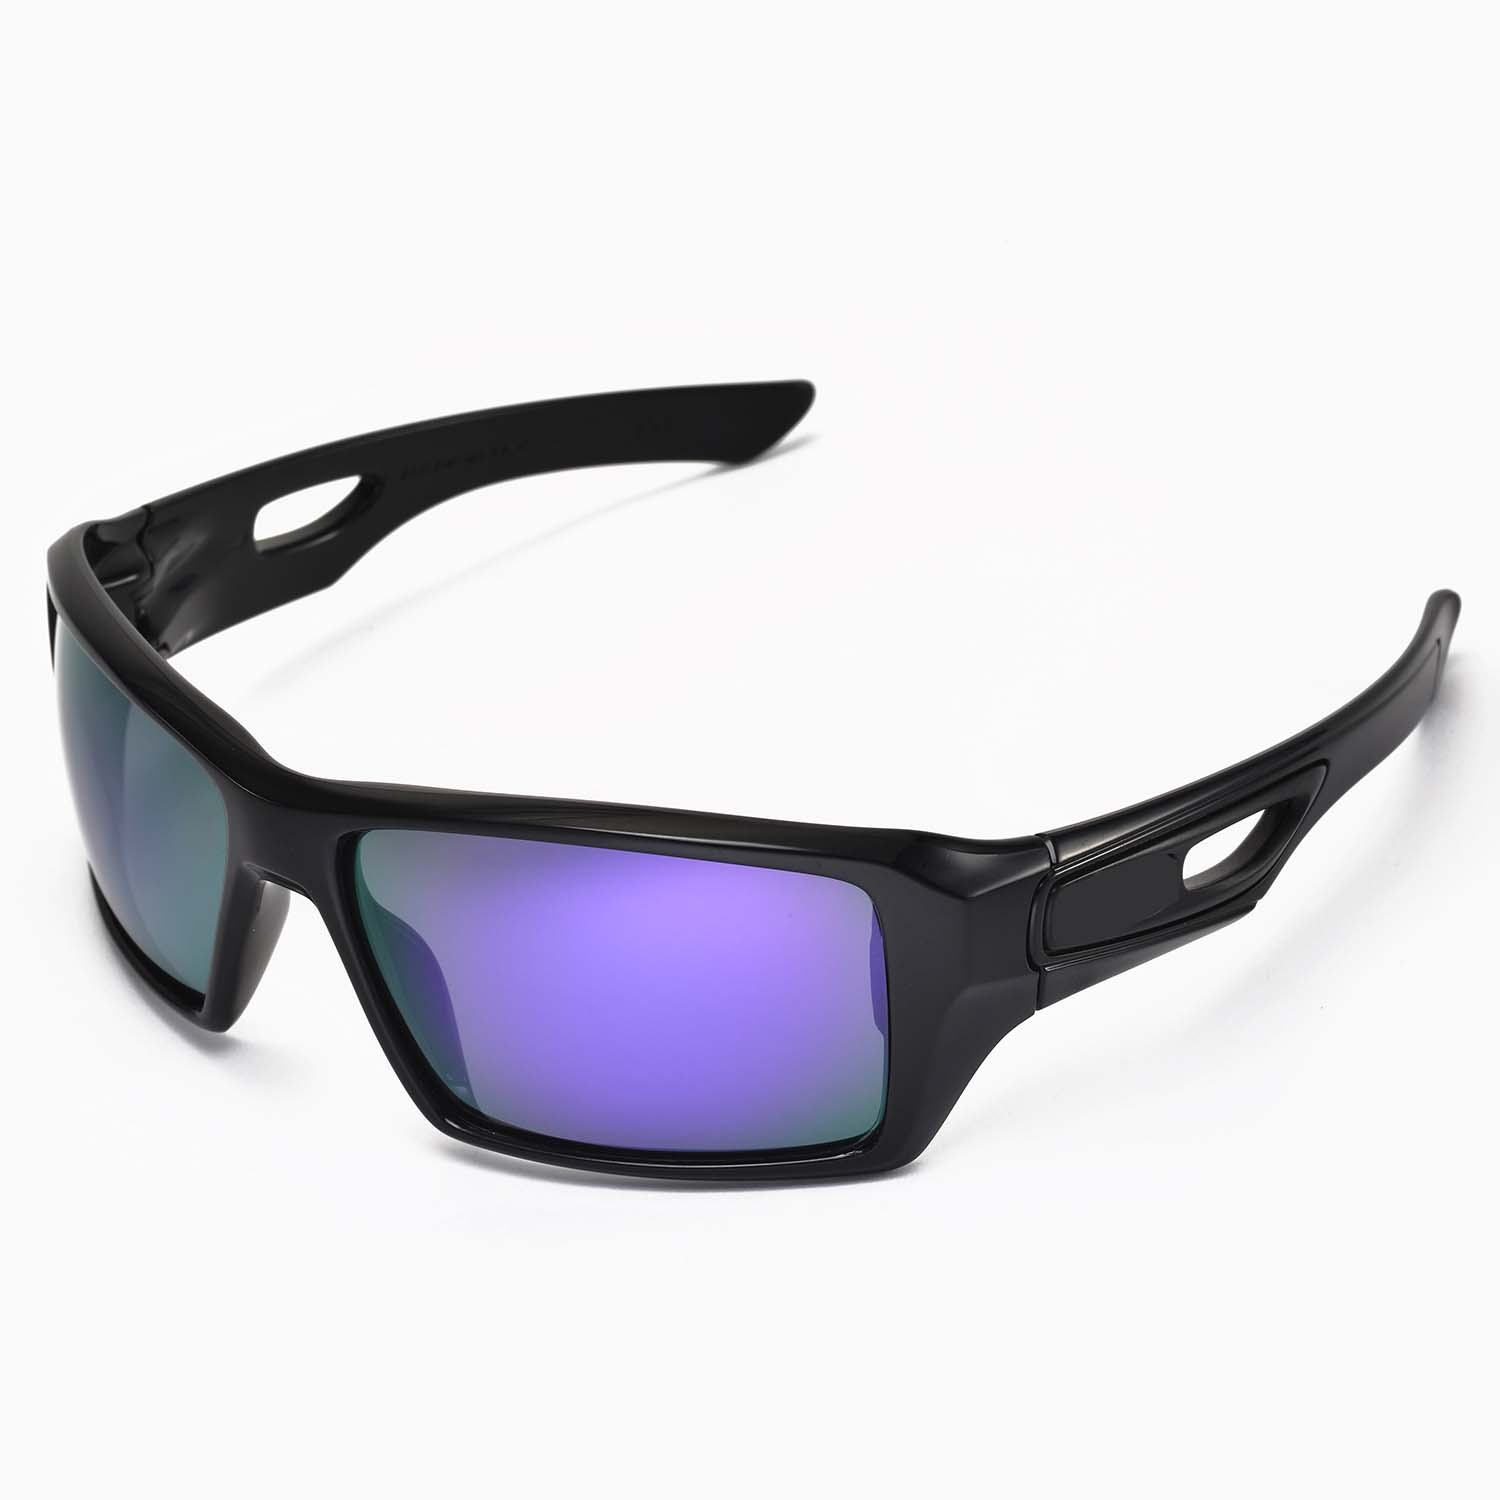 oakley eyepatch 2 polarized sunglasses  new walleva polarized purple lenses for oakley eyepatch 2